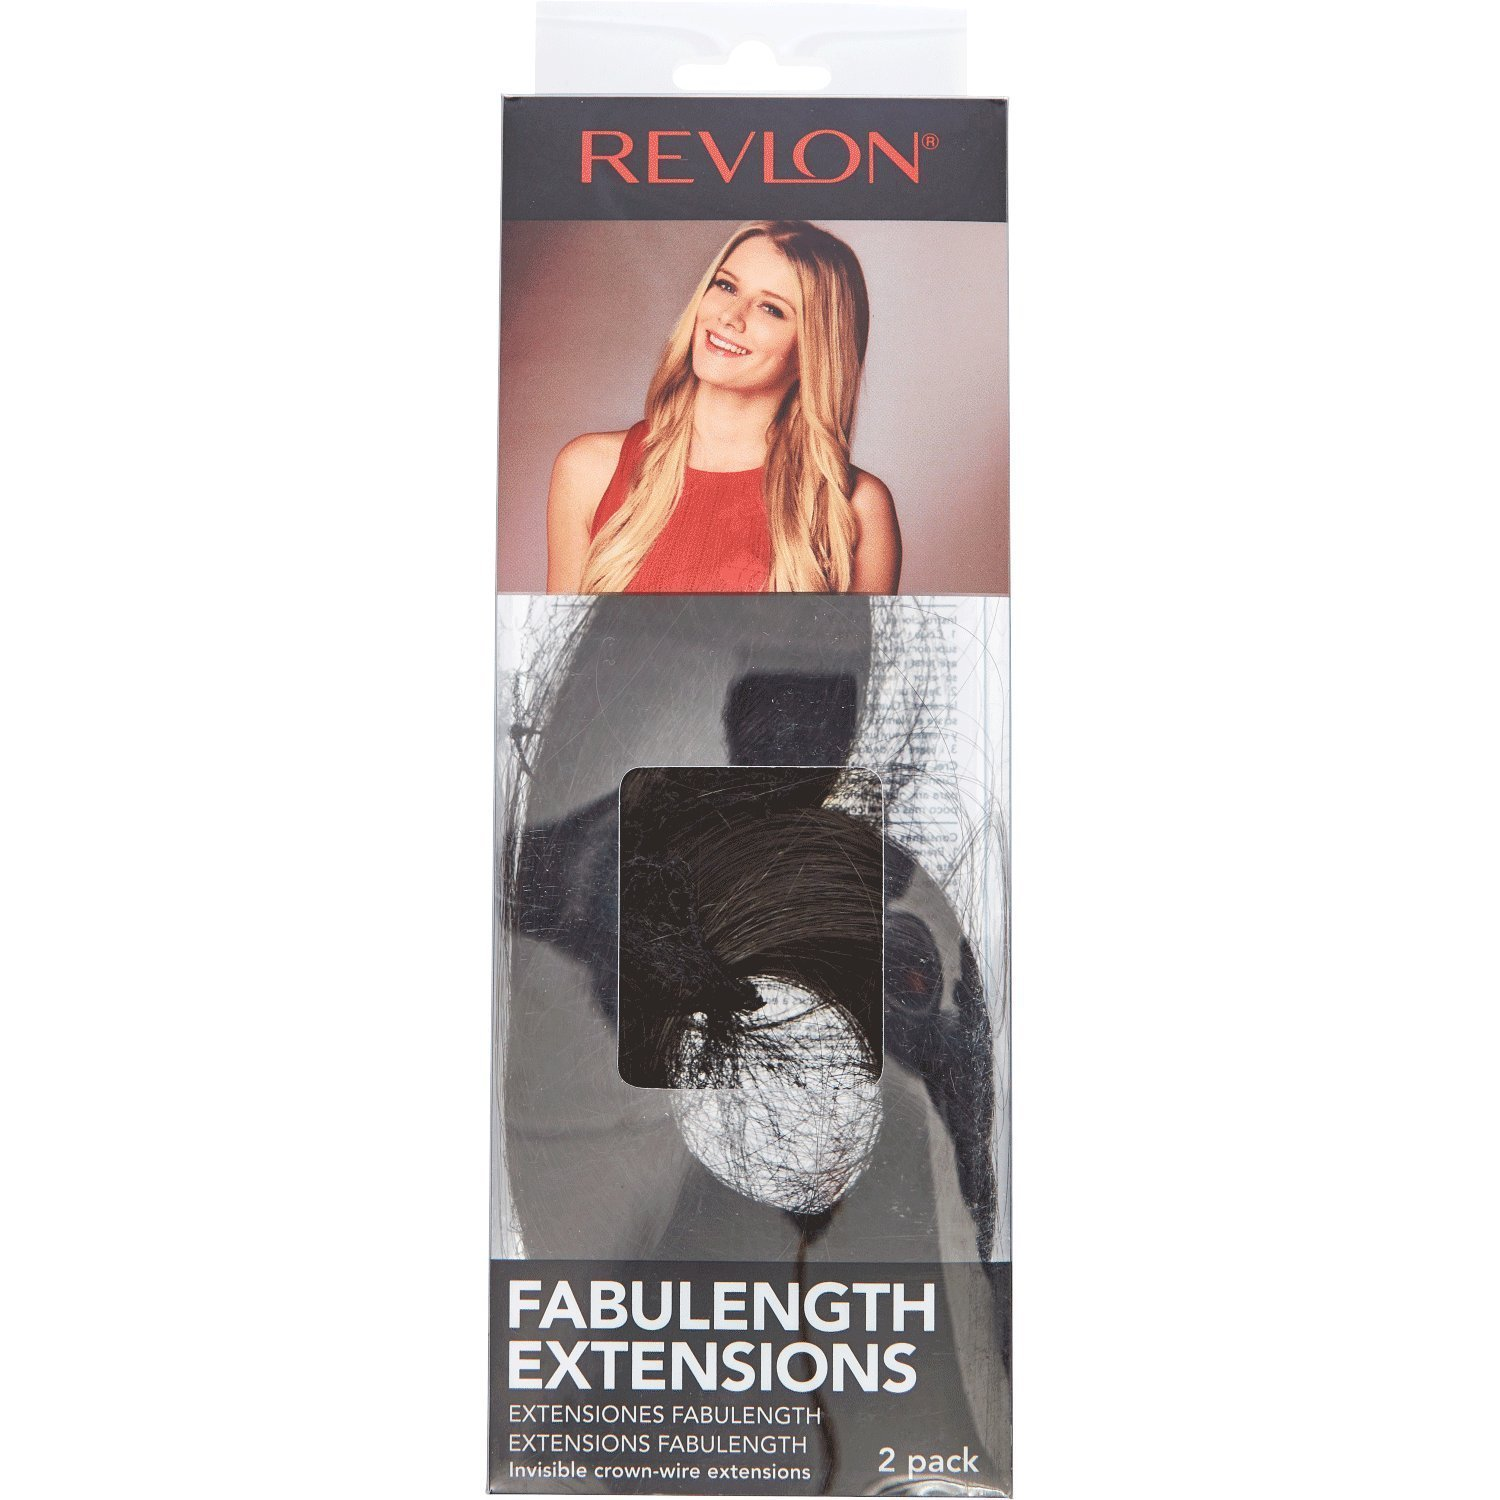 Amazon.com : Revlon Ready-to-Wear Fabulength 18 Inch Extensions ...